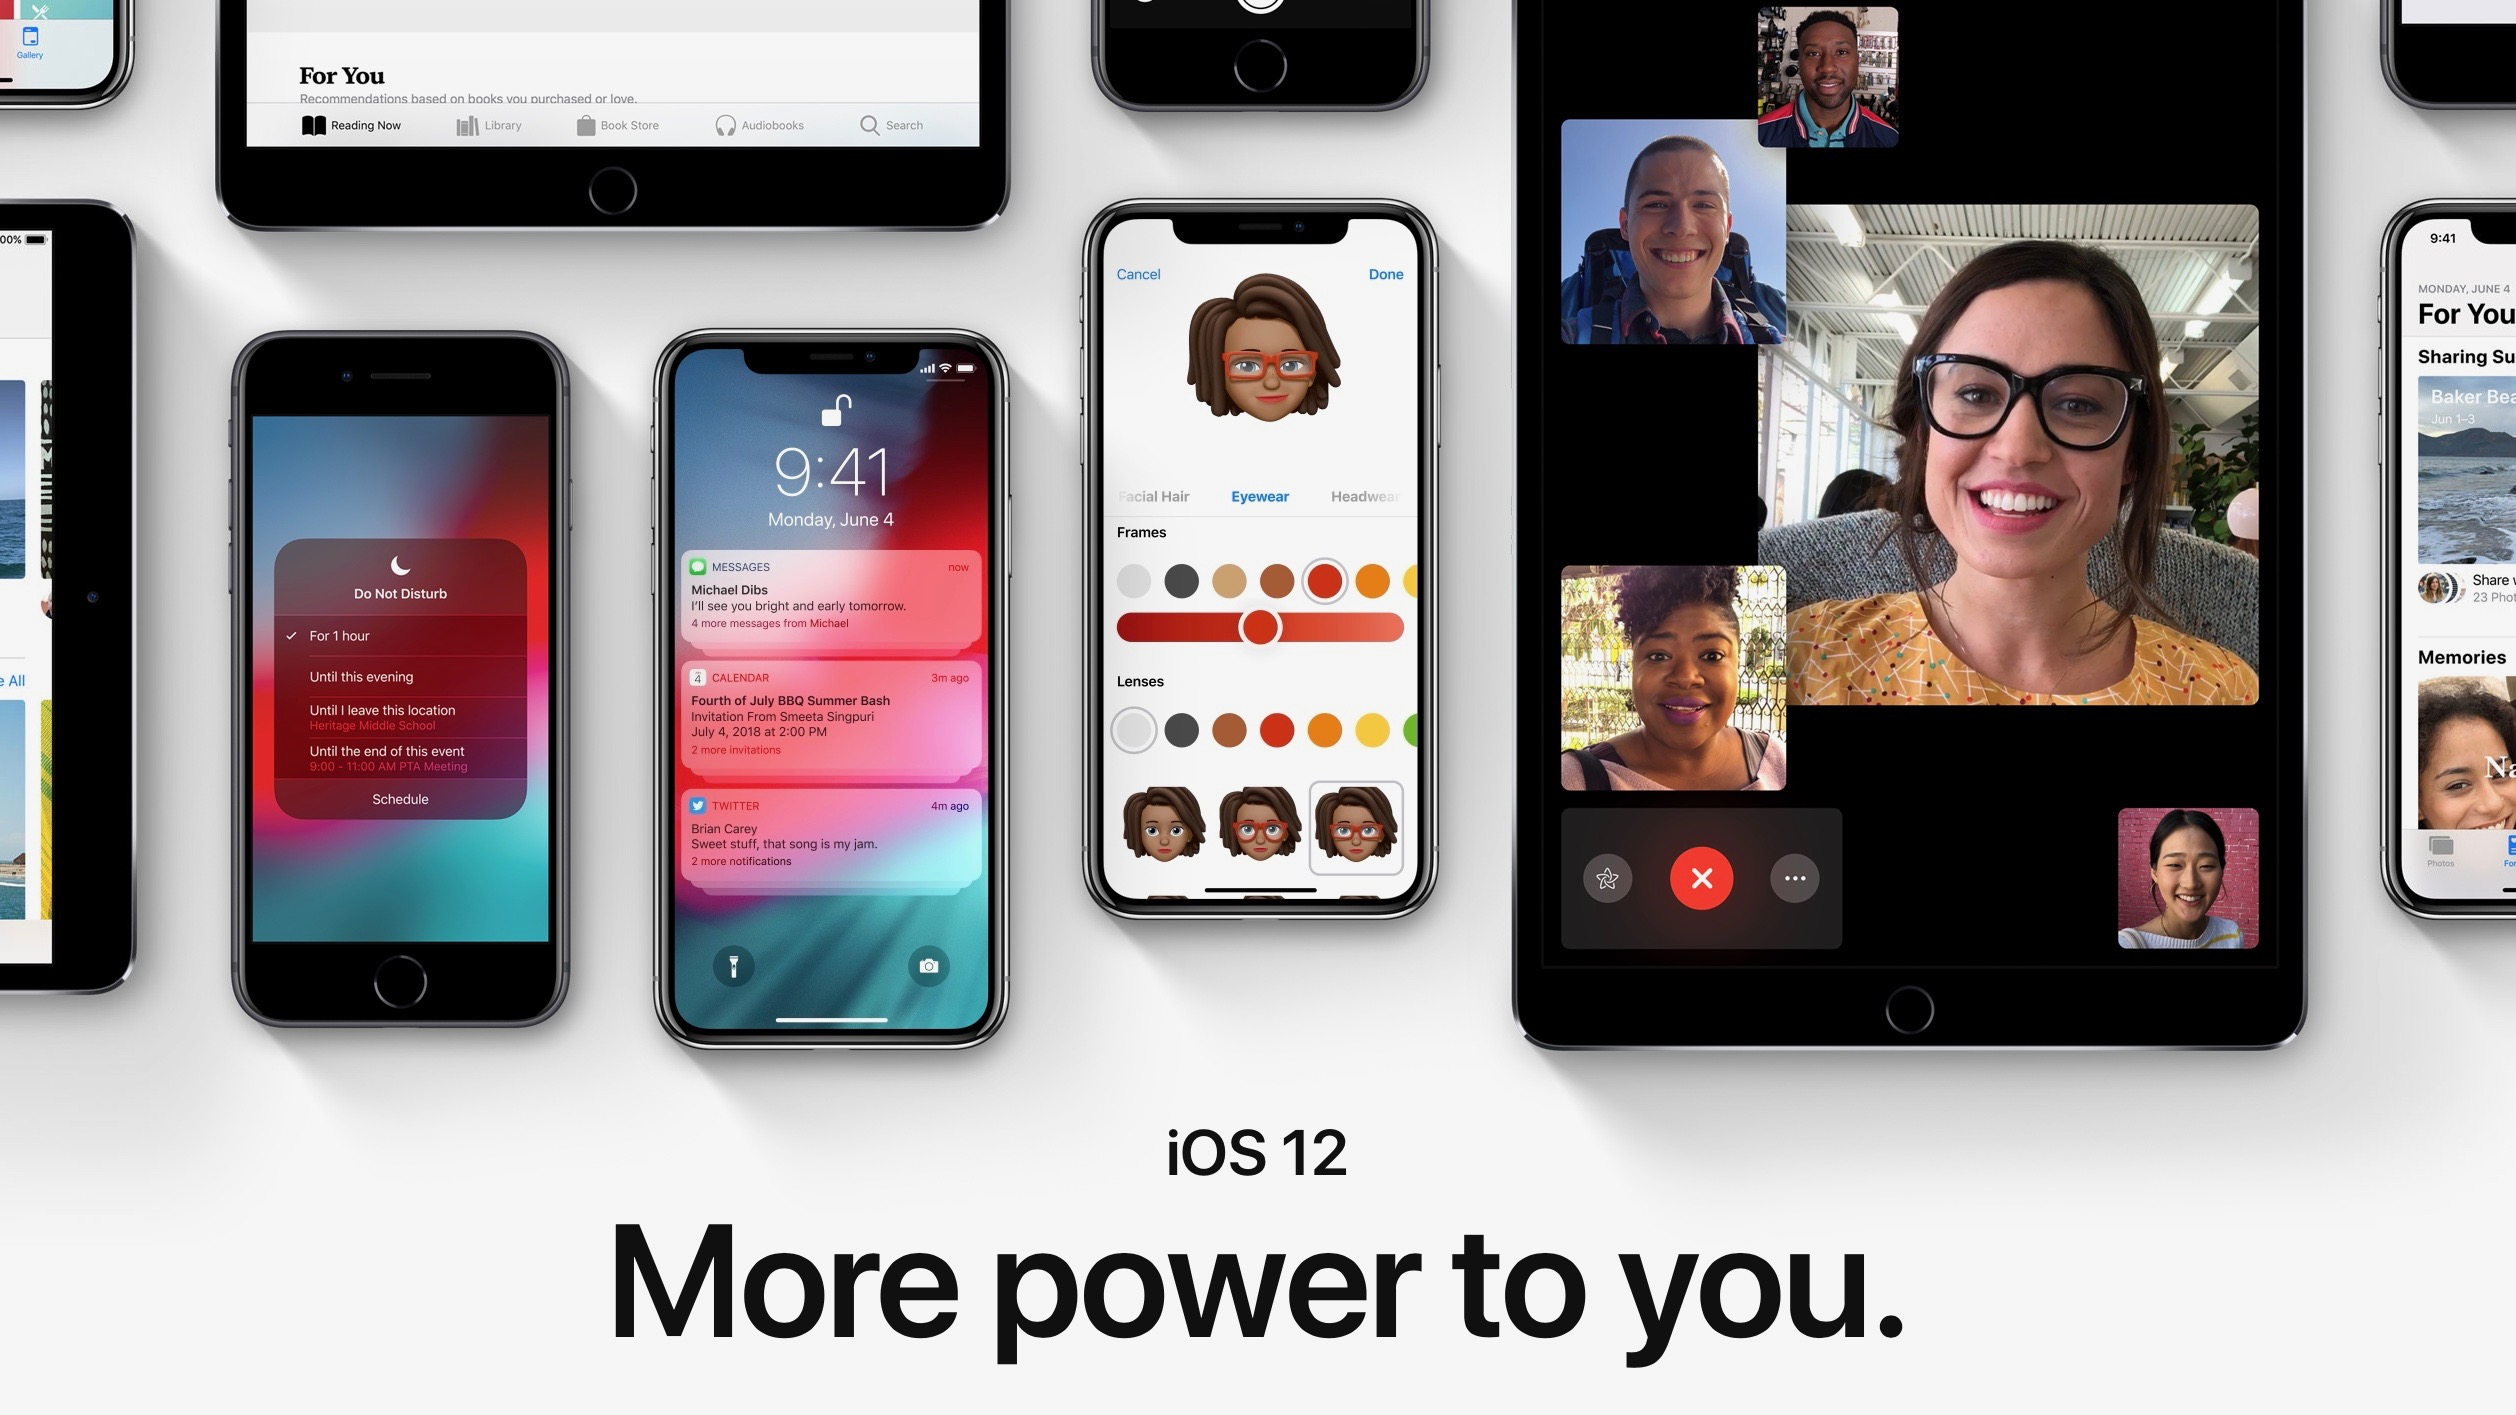 9to5mac.com - Michael Potuck - How to prepare iPhone and iPad for iOS 12